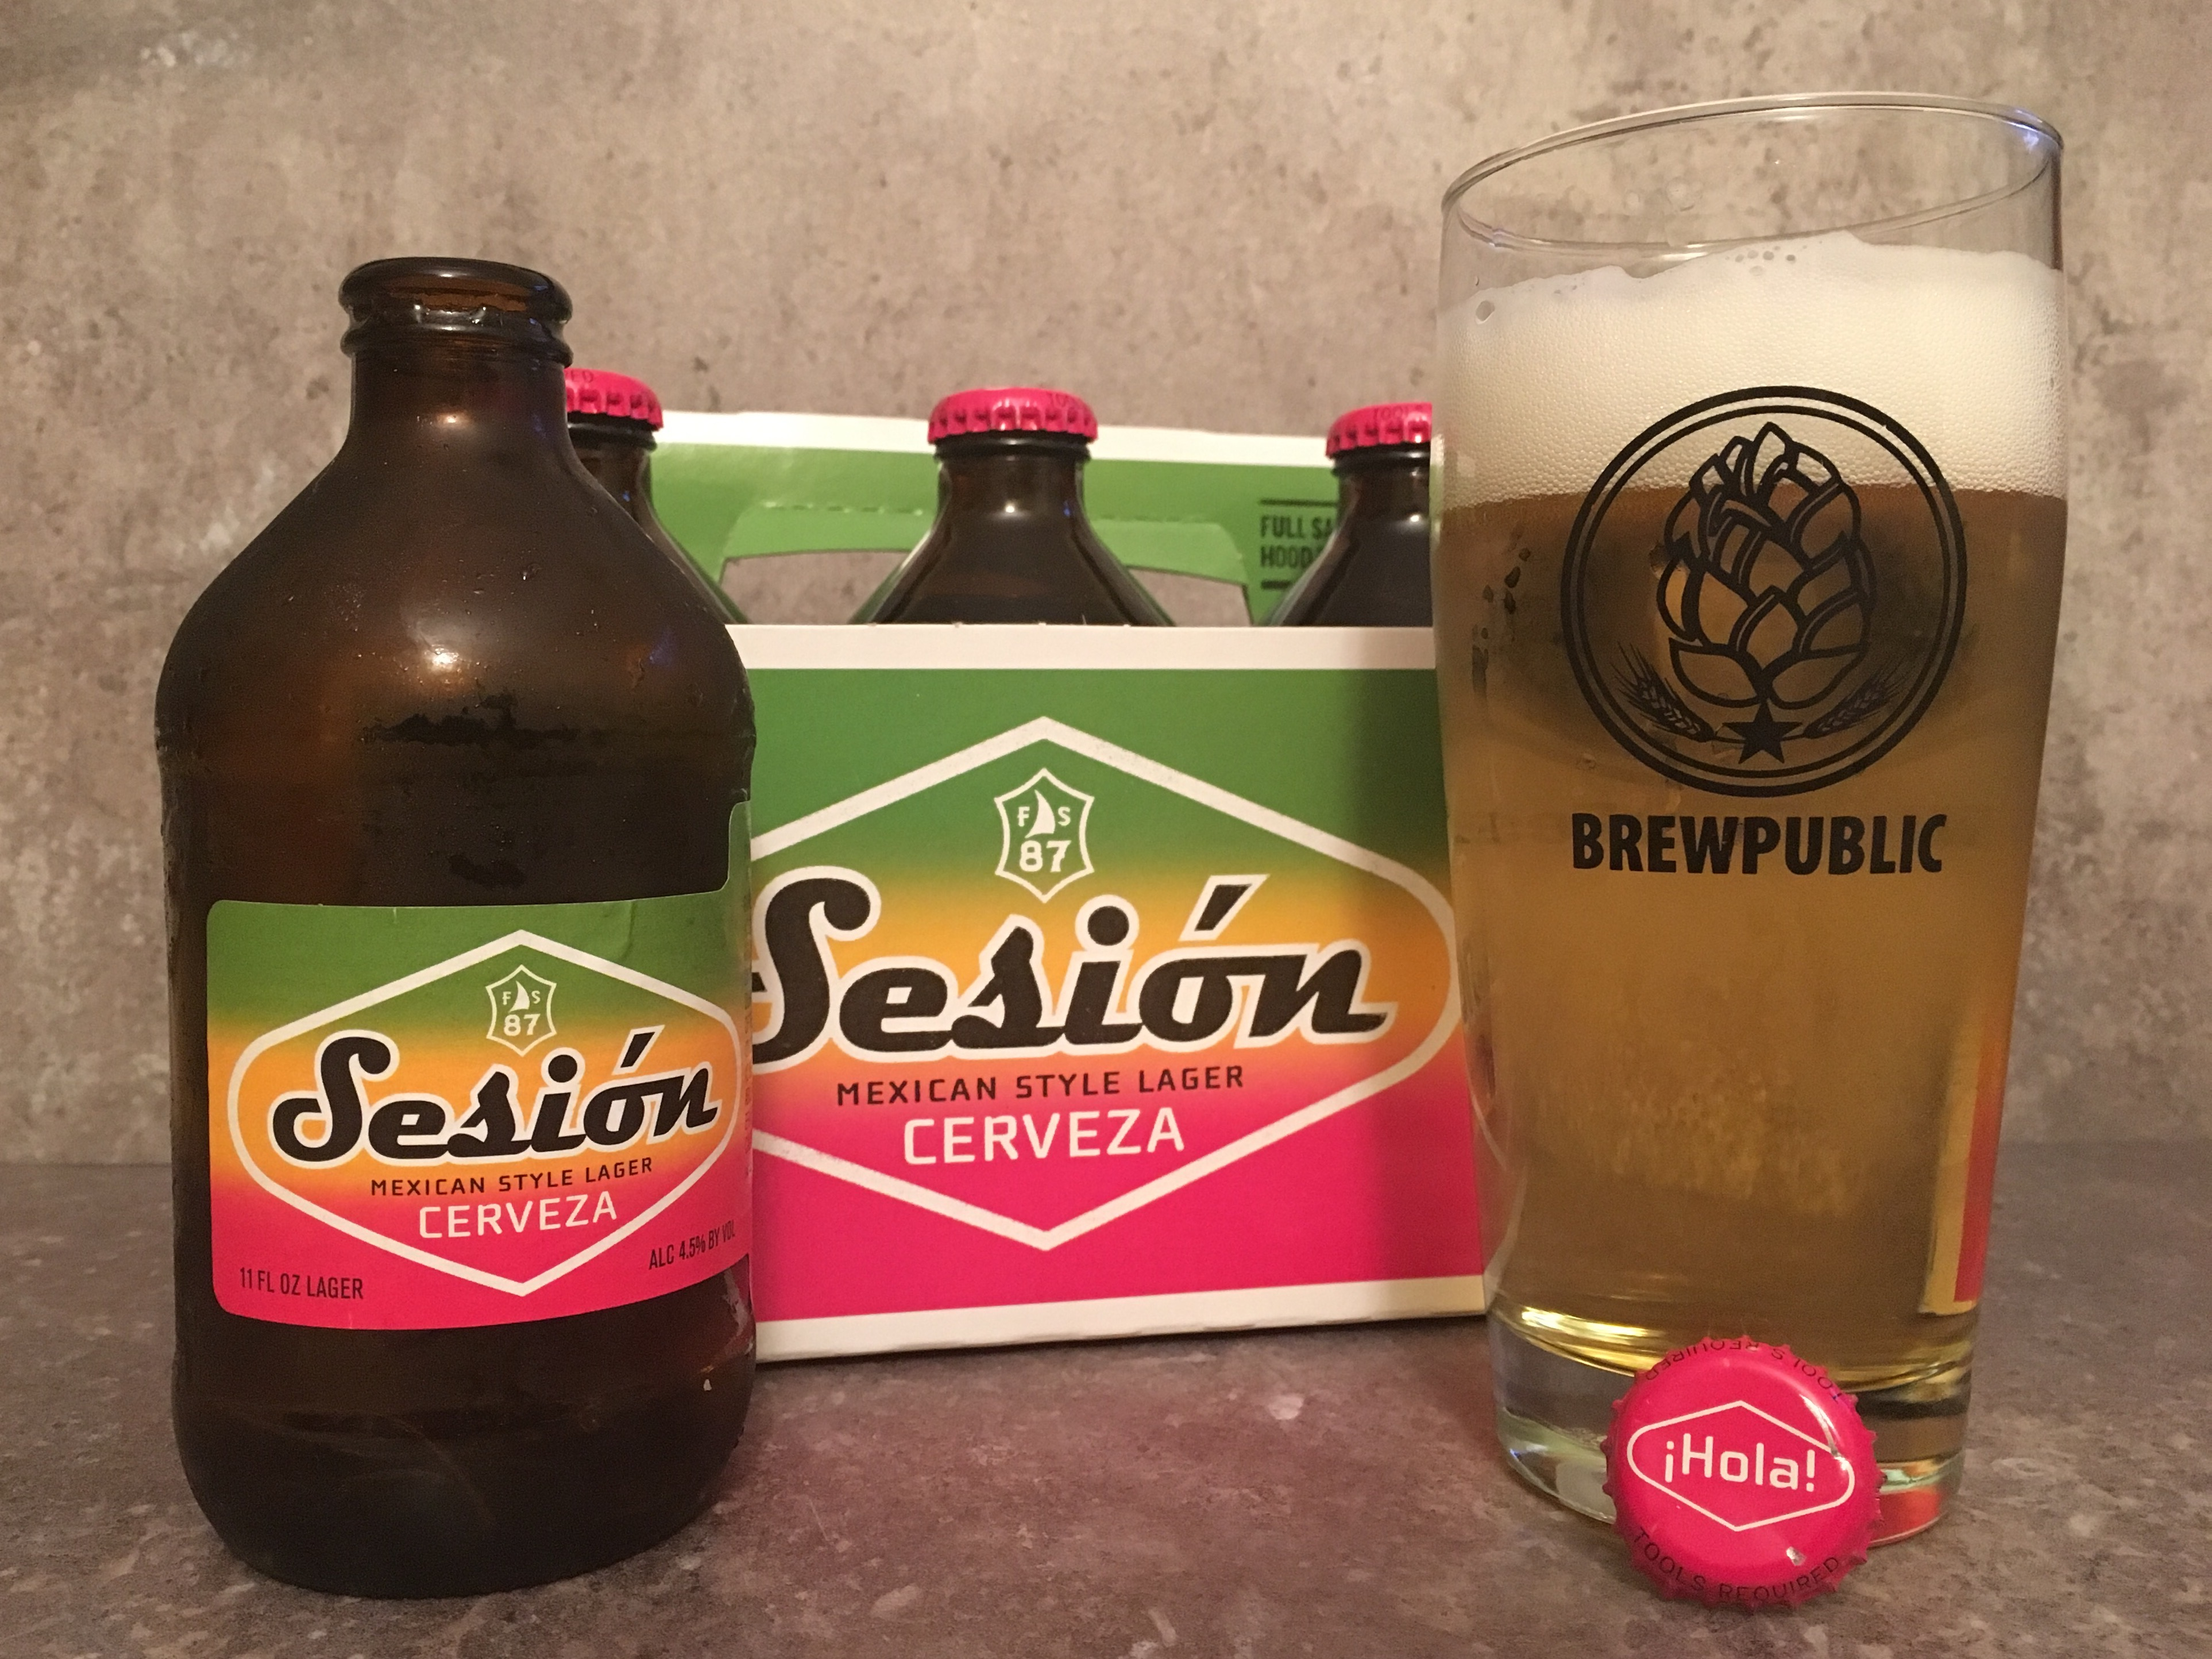 ... Sail Brewing Sesion Cerveza Mexican Style Lager in a Brewpublic glass